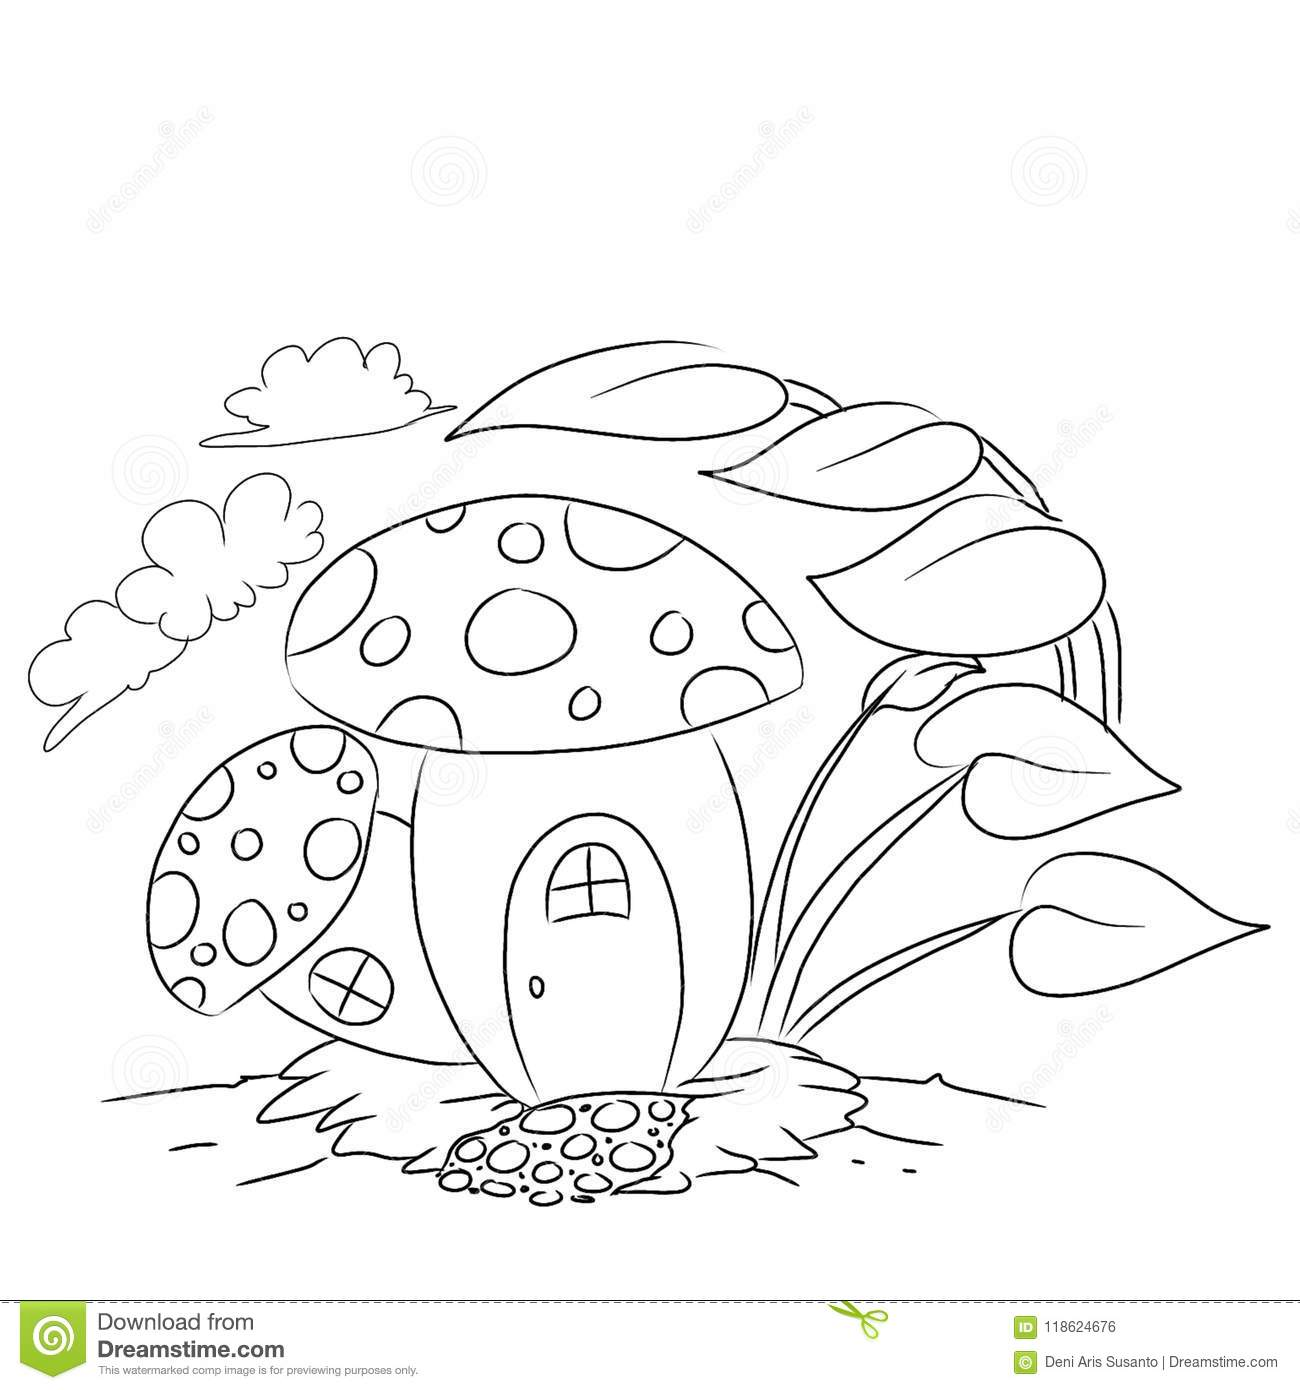 fairy graphic outline coloring pages | Mushroom House Outline Cartoon Colouring Page Stock ...